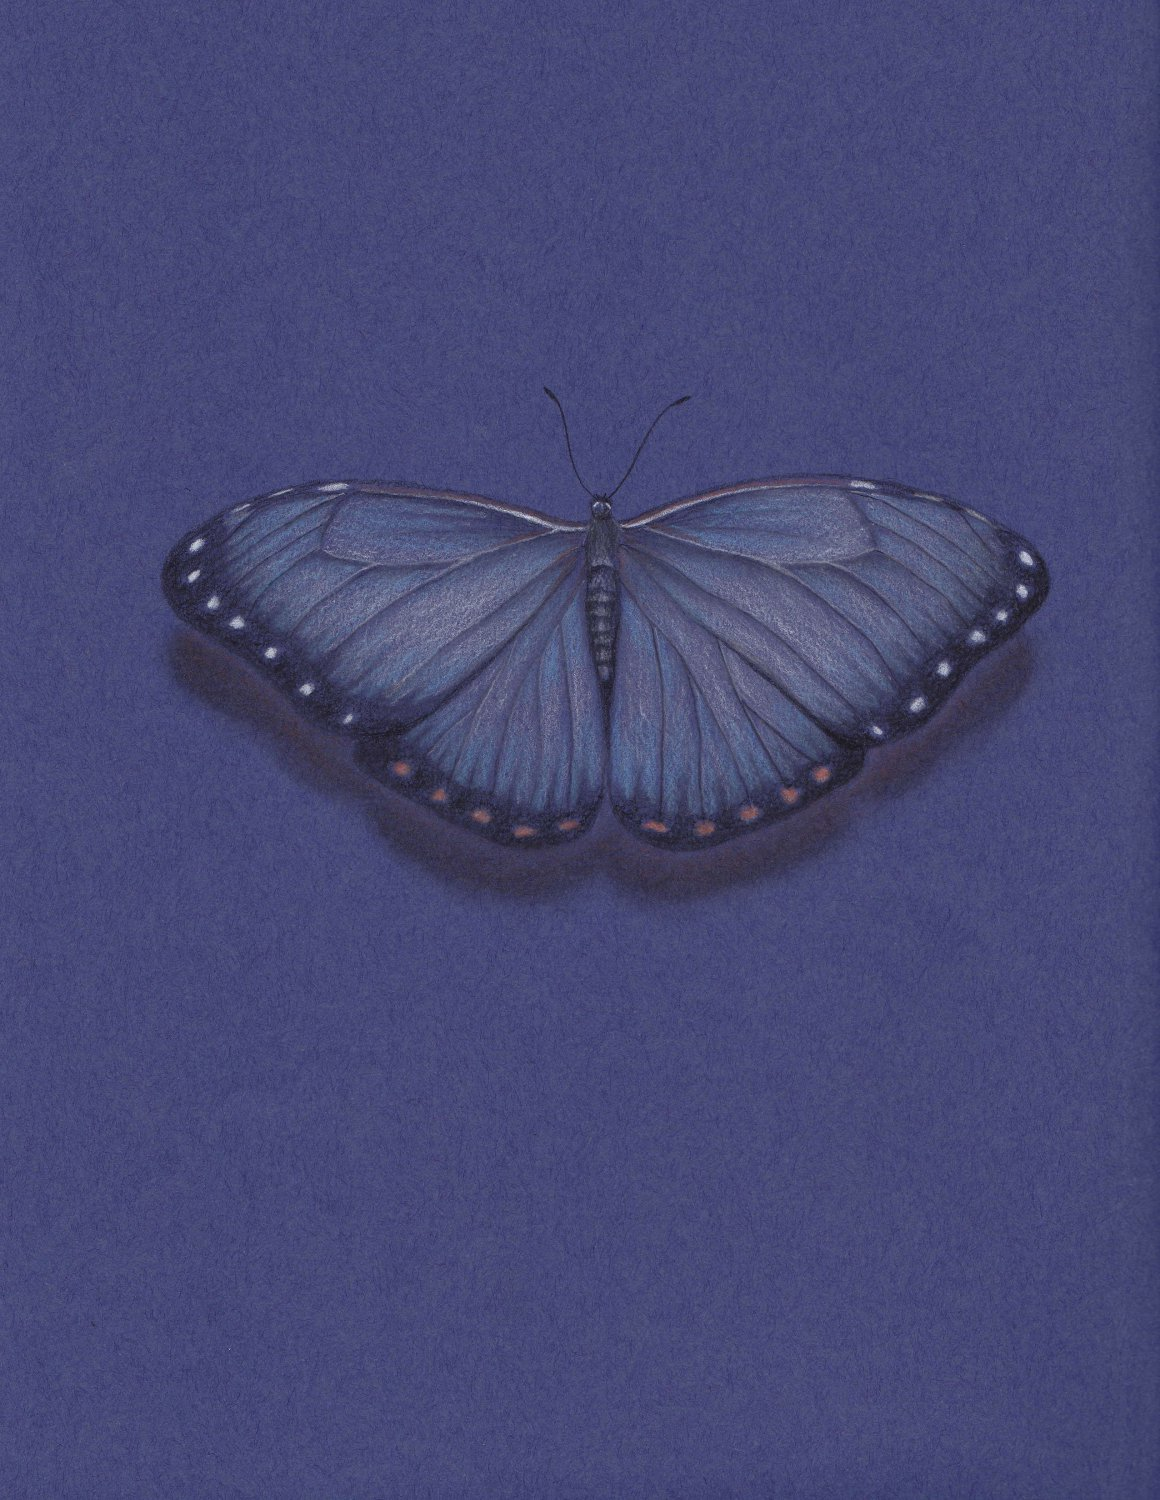 Dark Blue Butterfly Wing Span Pencil Drawing Gicleé Fine Art Print